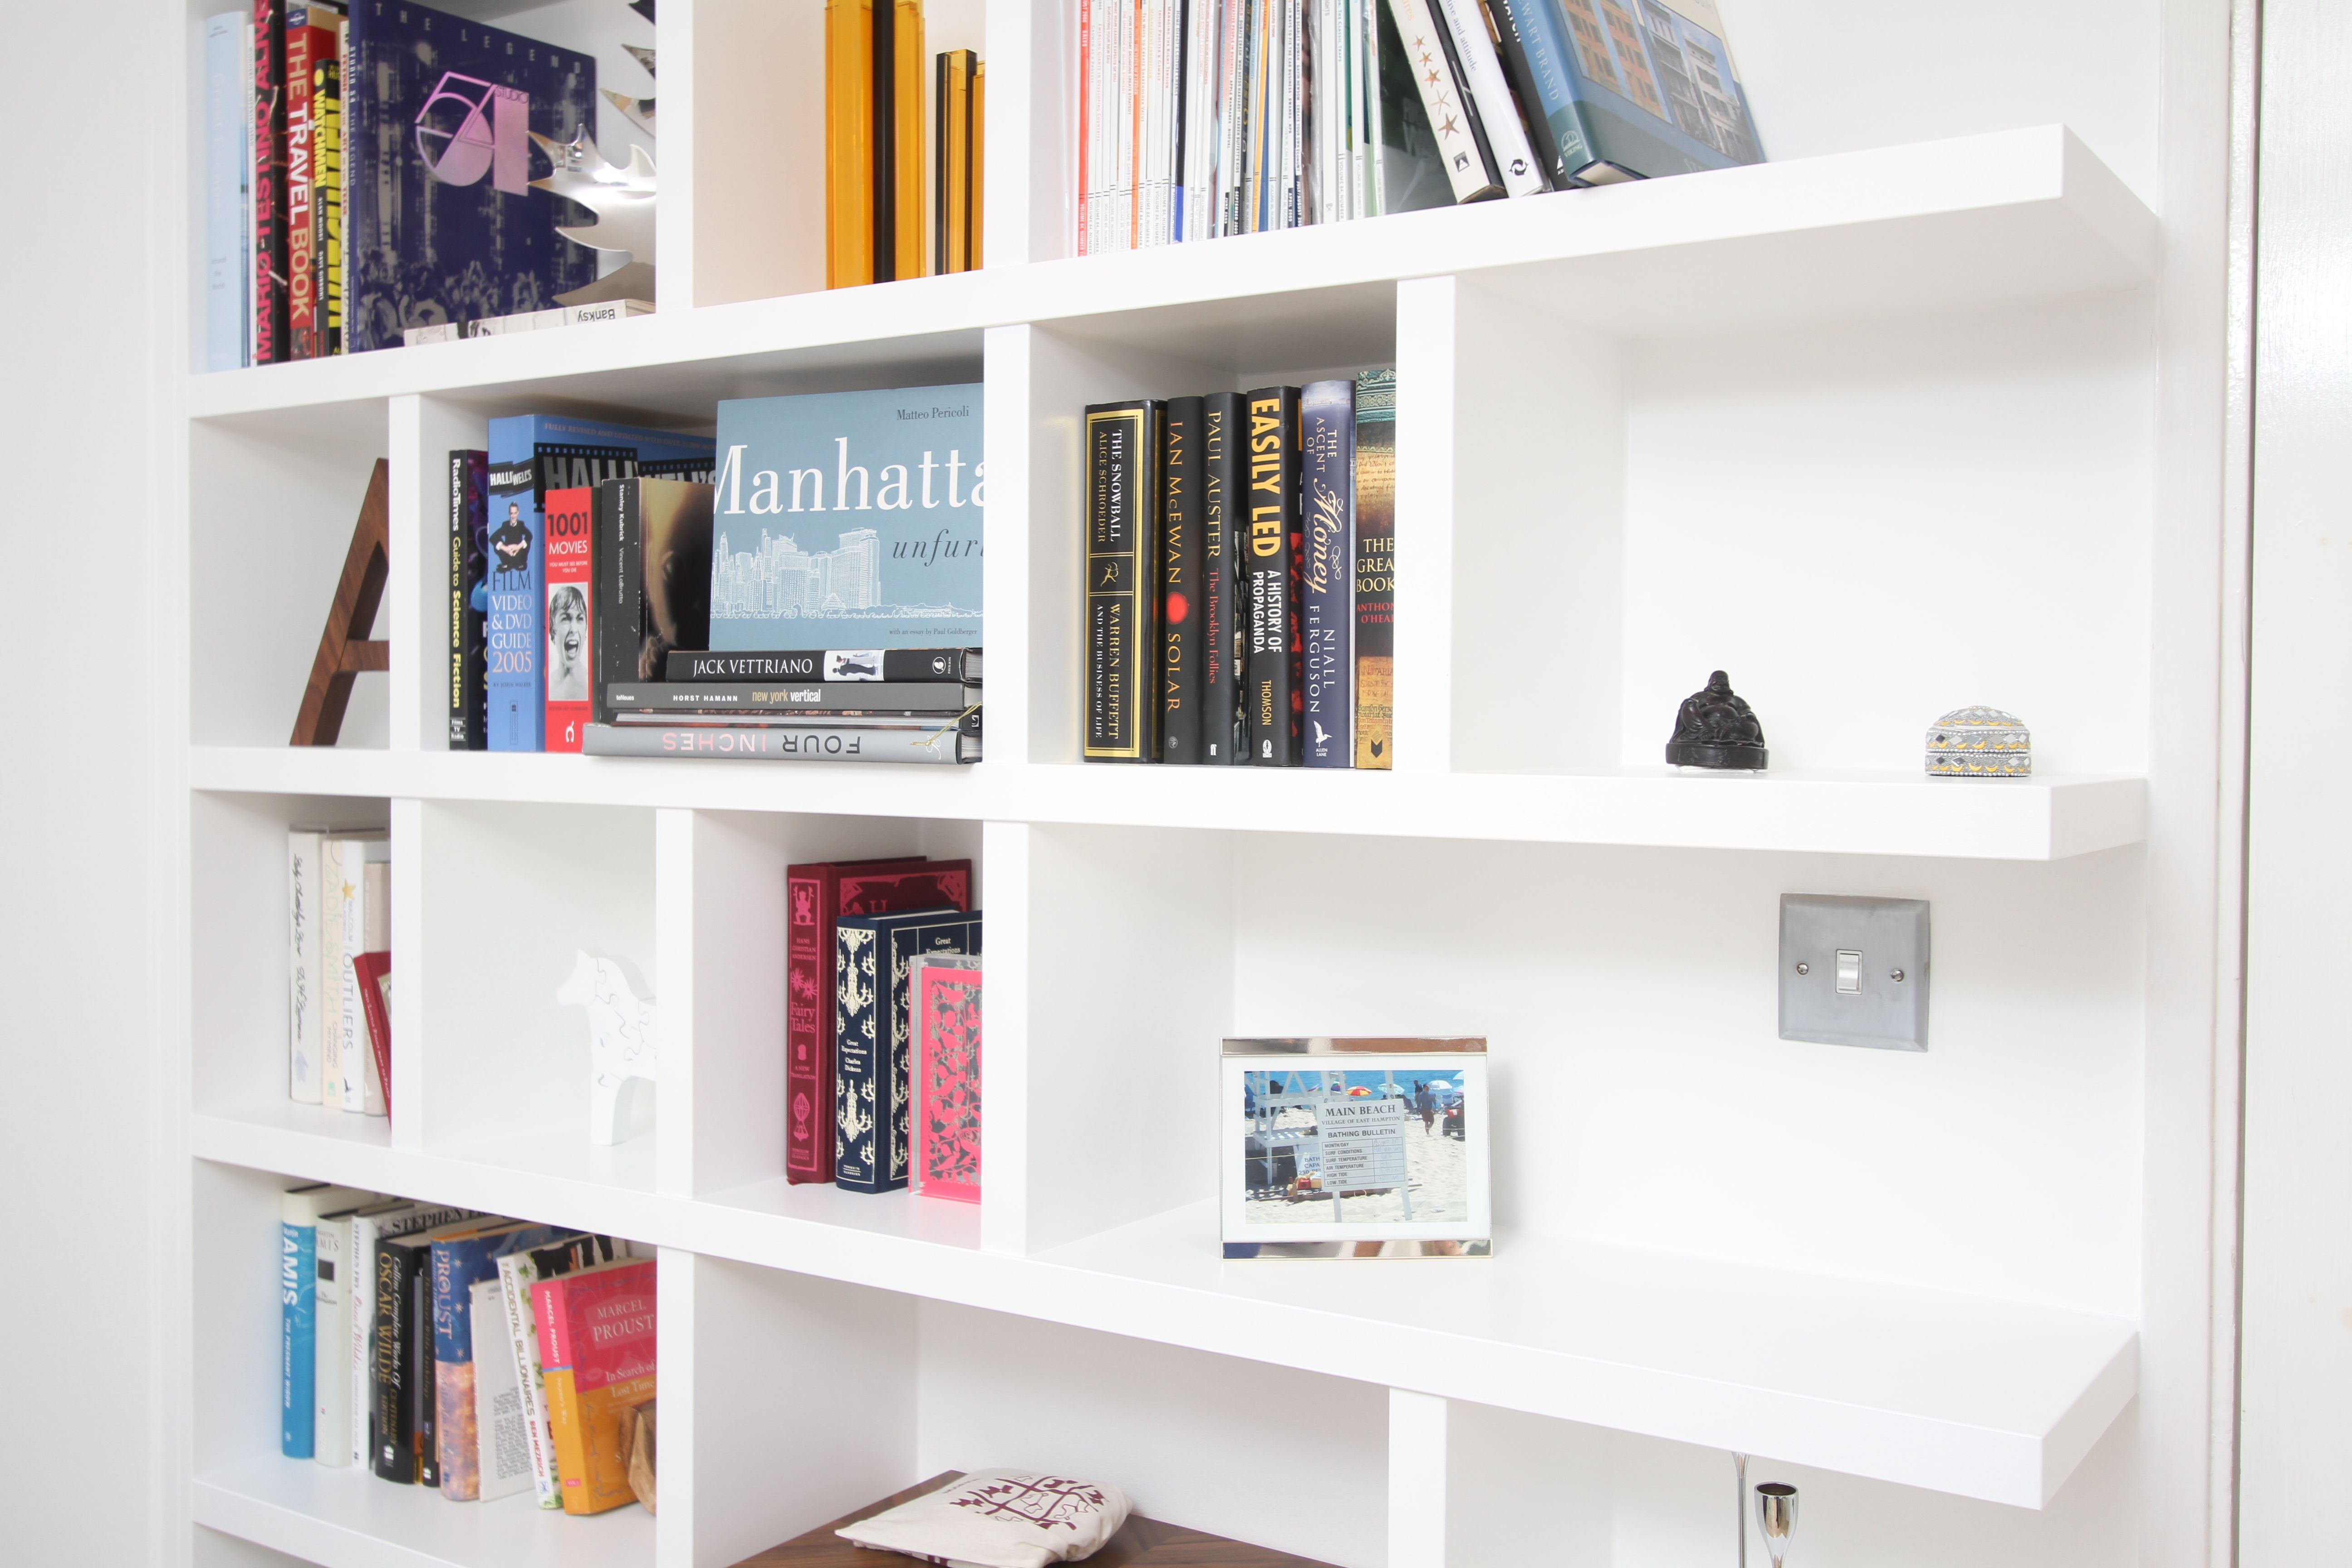 1000 Images About Shelving On Pinterest Diy Headboards Shelves